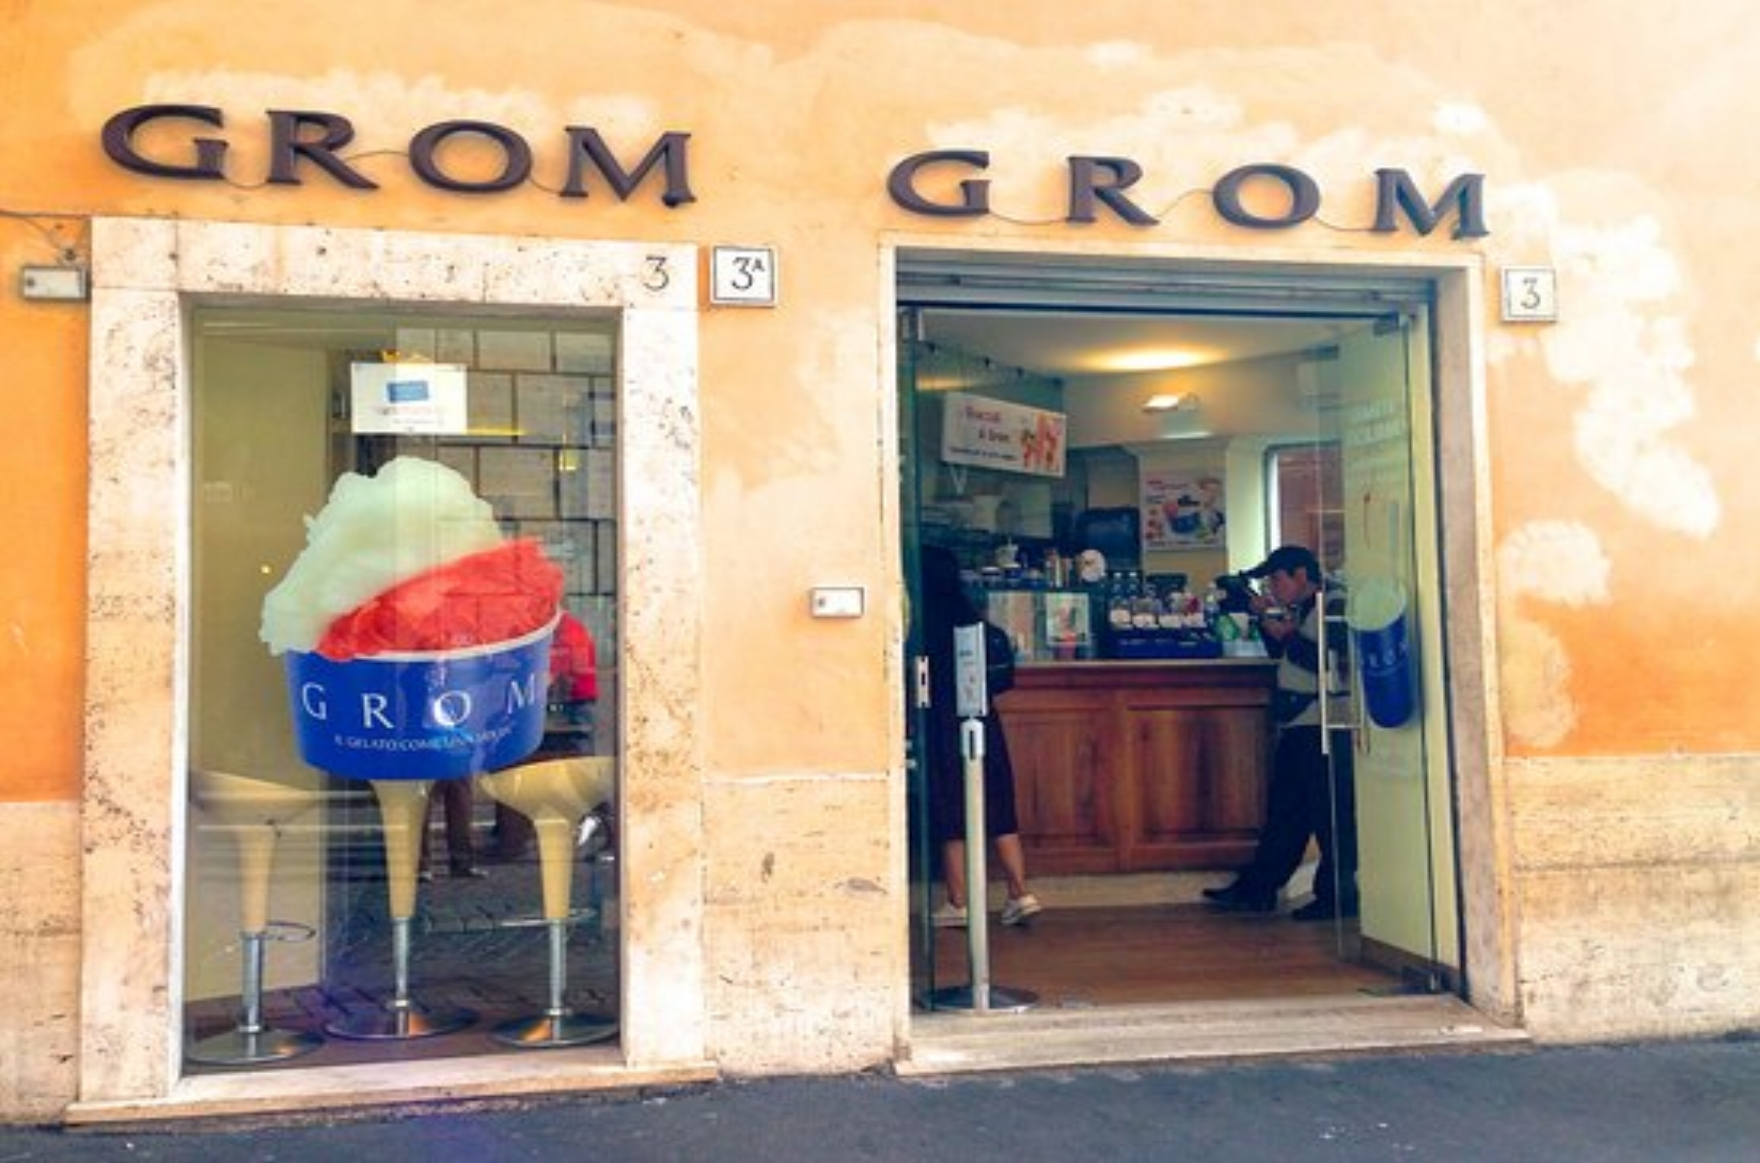 grom - Grom is a much-loved-by-locals Italian gelato chain. It's consistently delicious and available all over town. (and Italy)